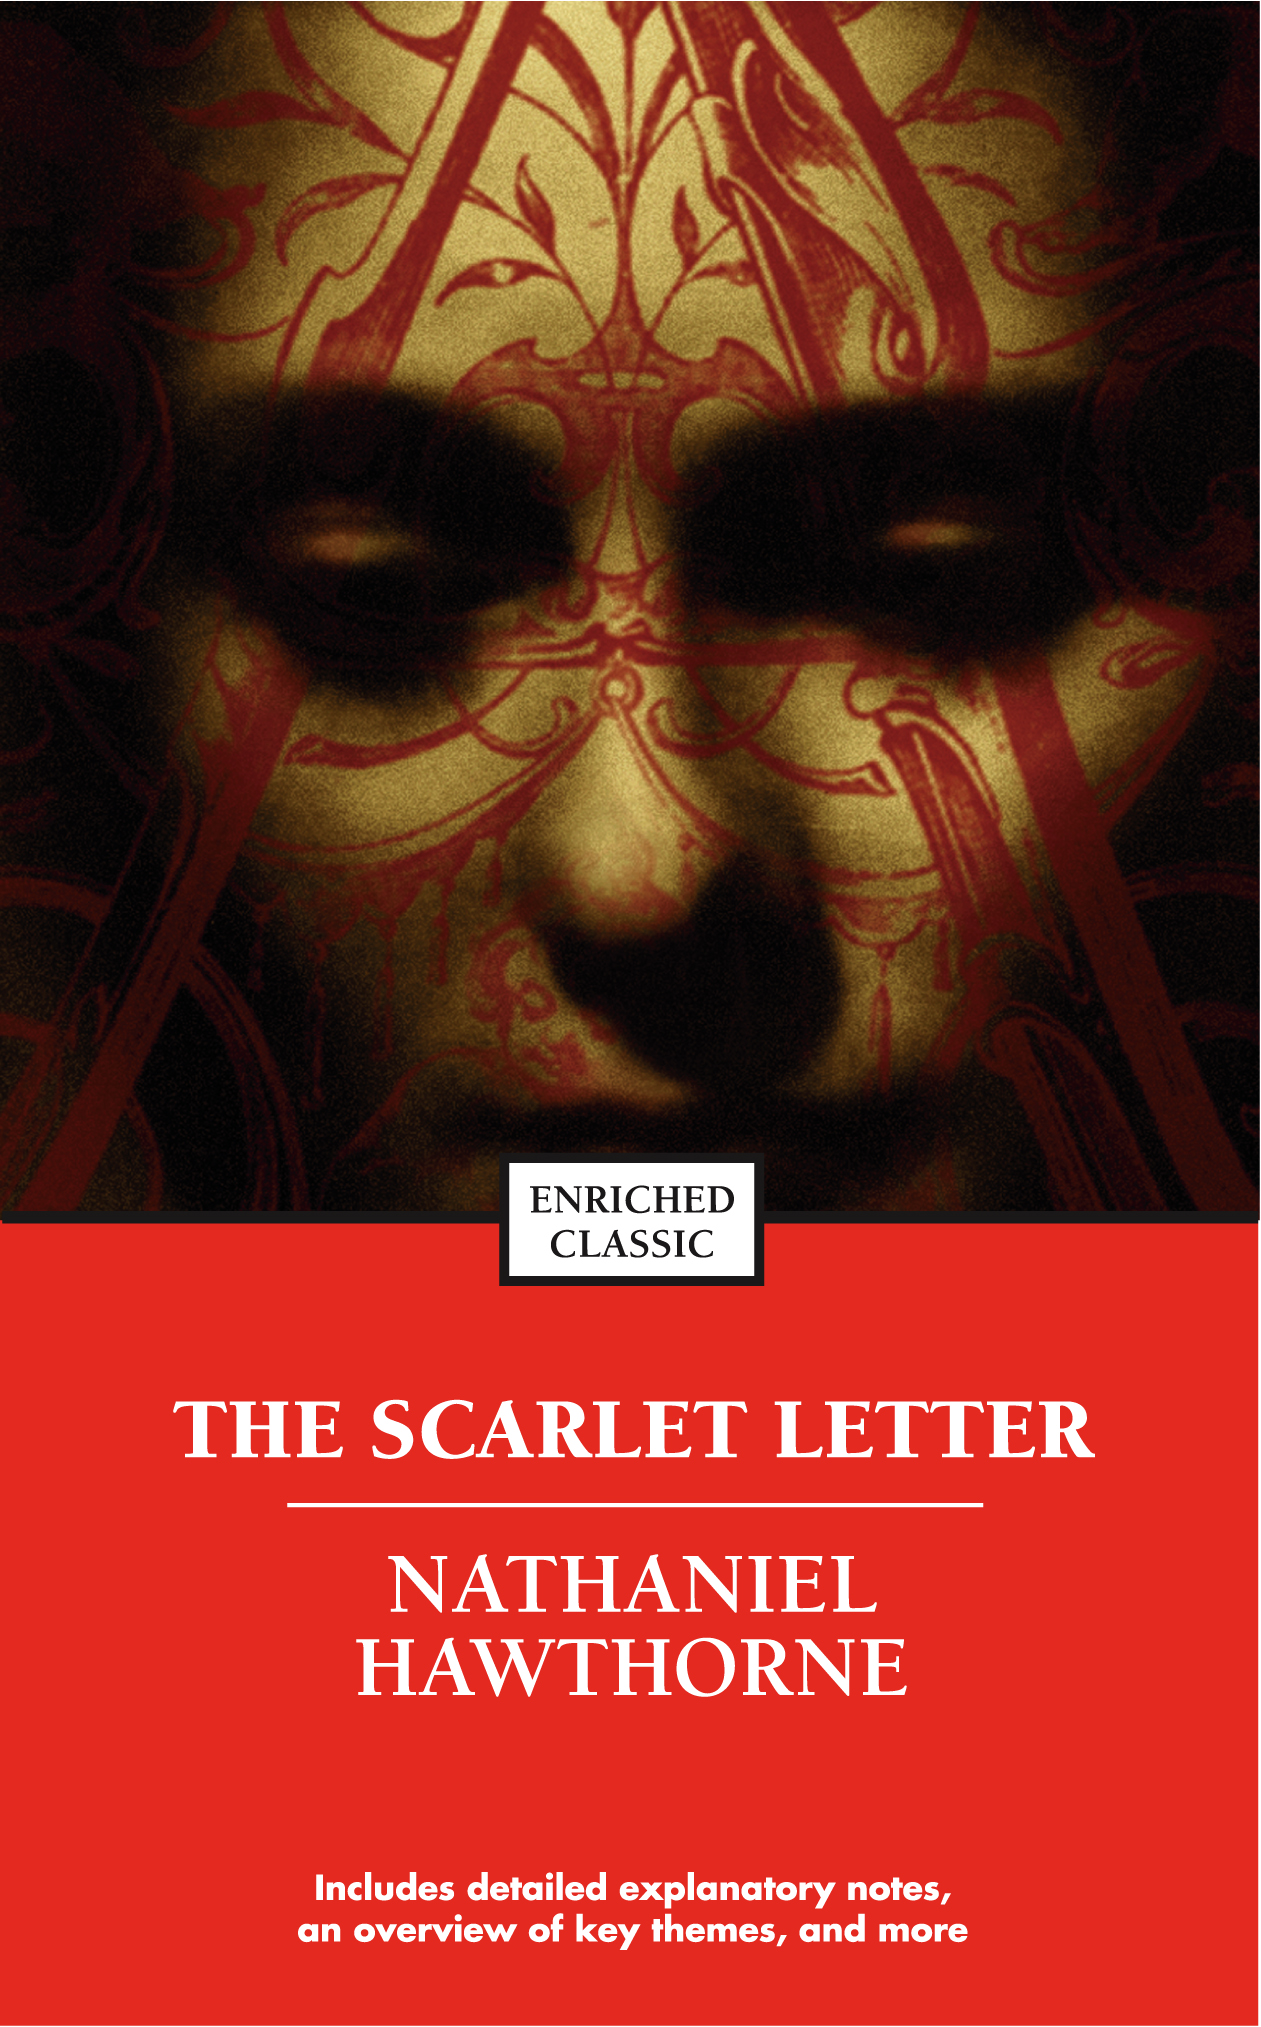 the scarlet letter book the scarlet letter book by nathaniel hawthorne 25221